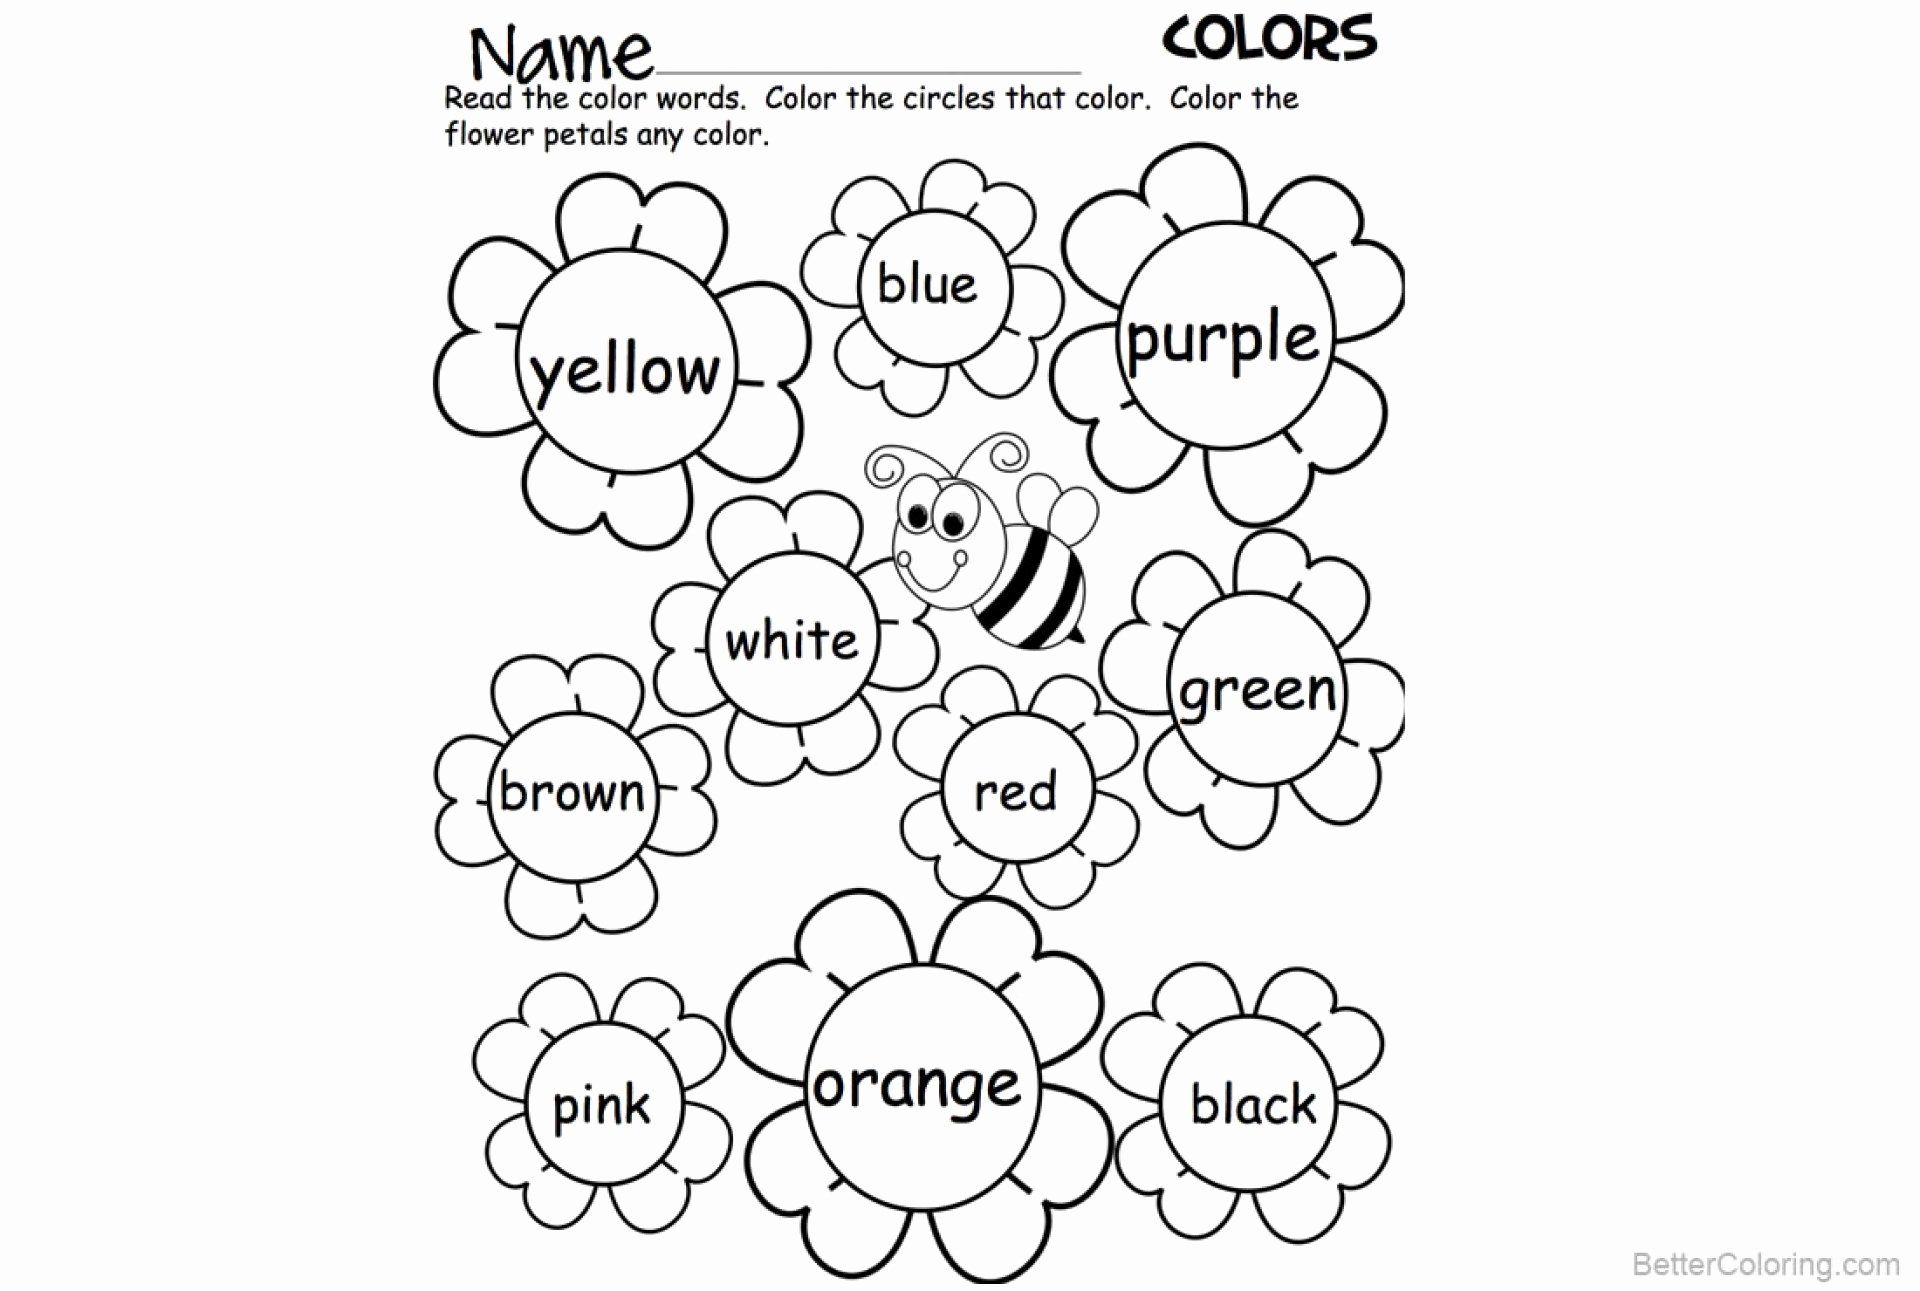 Color Words Coloring Sheet New Awesome Free Printable